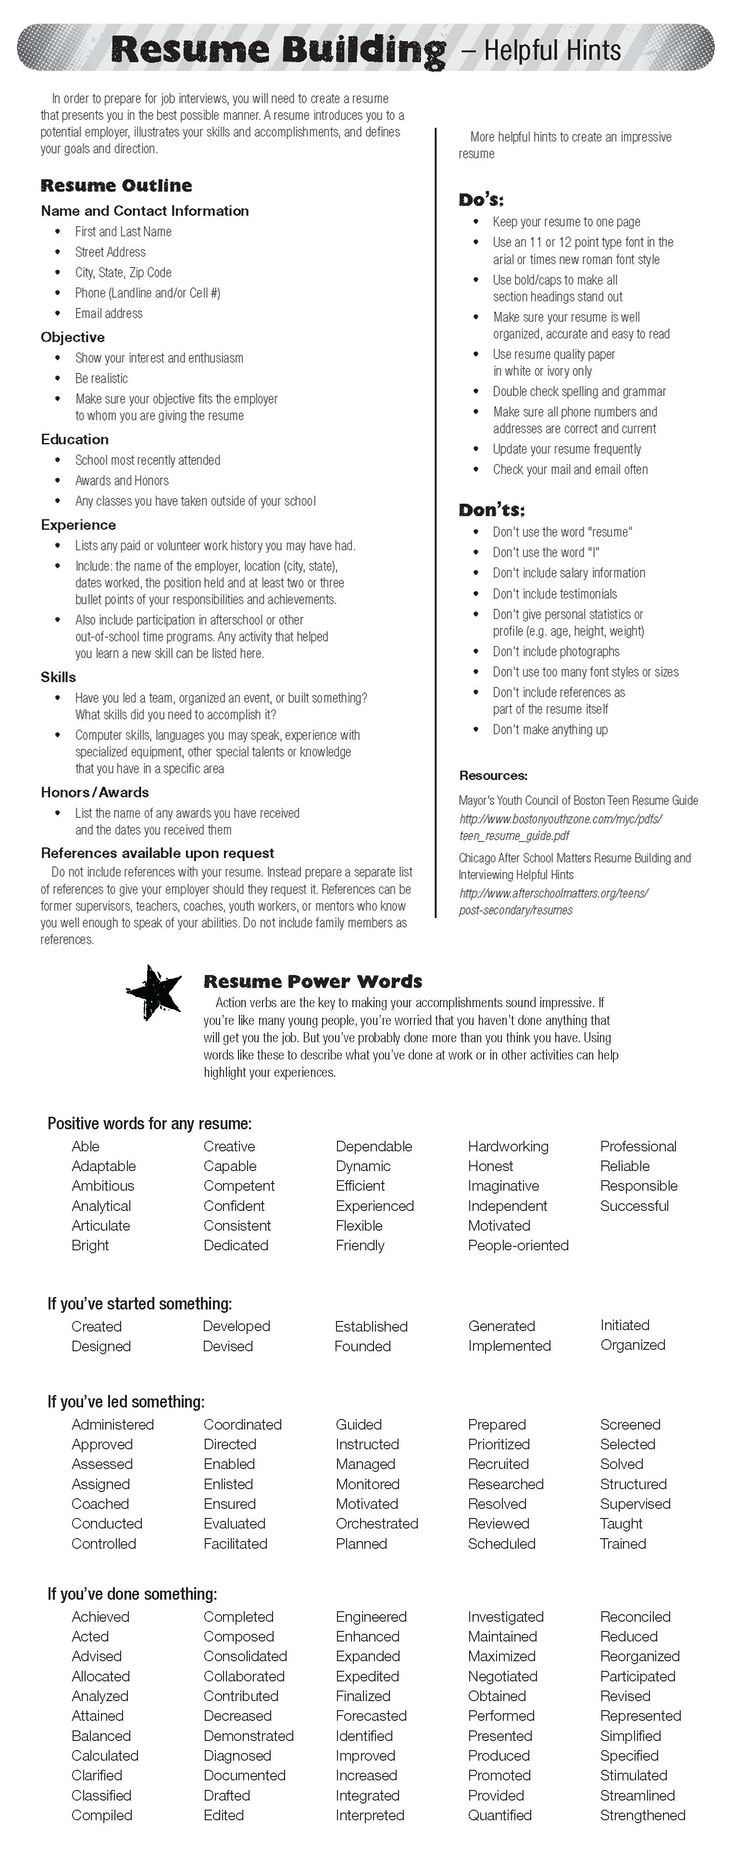 Opposenewapstandardsus  Winning  Ideas About Resume On Pinterest  Cv Format Resume Cv And  With Fascinating  Ideas About Resume On Pinterest  Cv Format Resume Cv And Resume Templates With Delectable College Student Resume Sample Also Pages Resume Template In Addition Experienced Teacher Resume And Resume Pronunciation As Well As Objective Of Resume Additionally Does A Resume Need An Objective From Pinterestcom With Opposenewapstandardsus  Fascinating  Ideas About Resume On Pinterest  Cv Format Resume Cv And  With Delectable  Ideas About Resume On Pinterest  Cv Format Resume Cv And Resume Templates And Winning College Student Resume Sample Also Pages Resume Template In Addition Experienced Teacher Resume From Pinterestcom